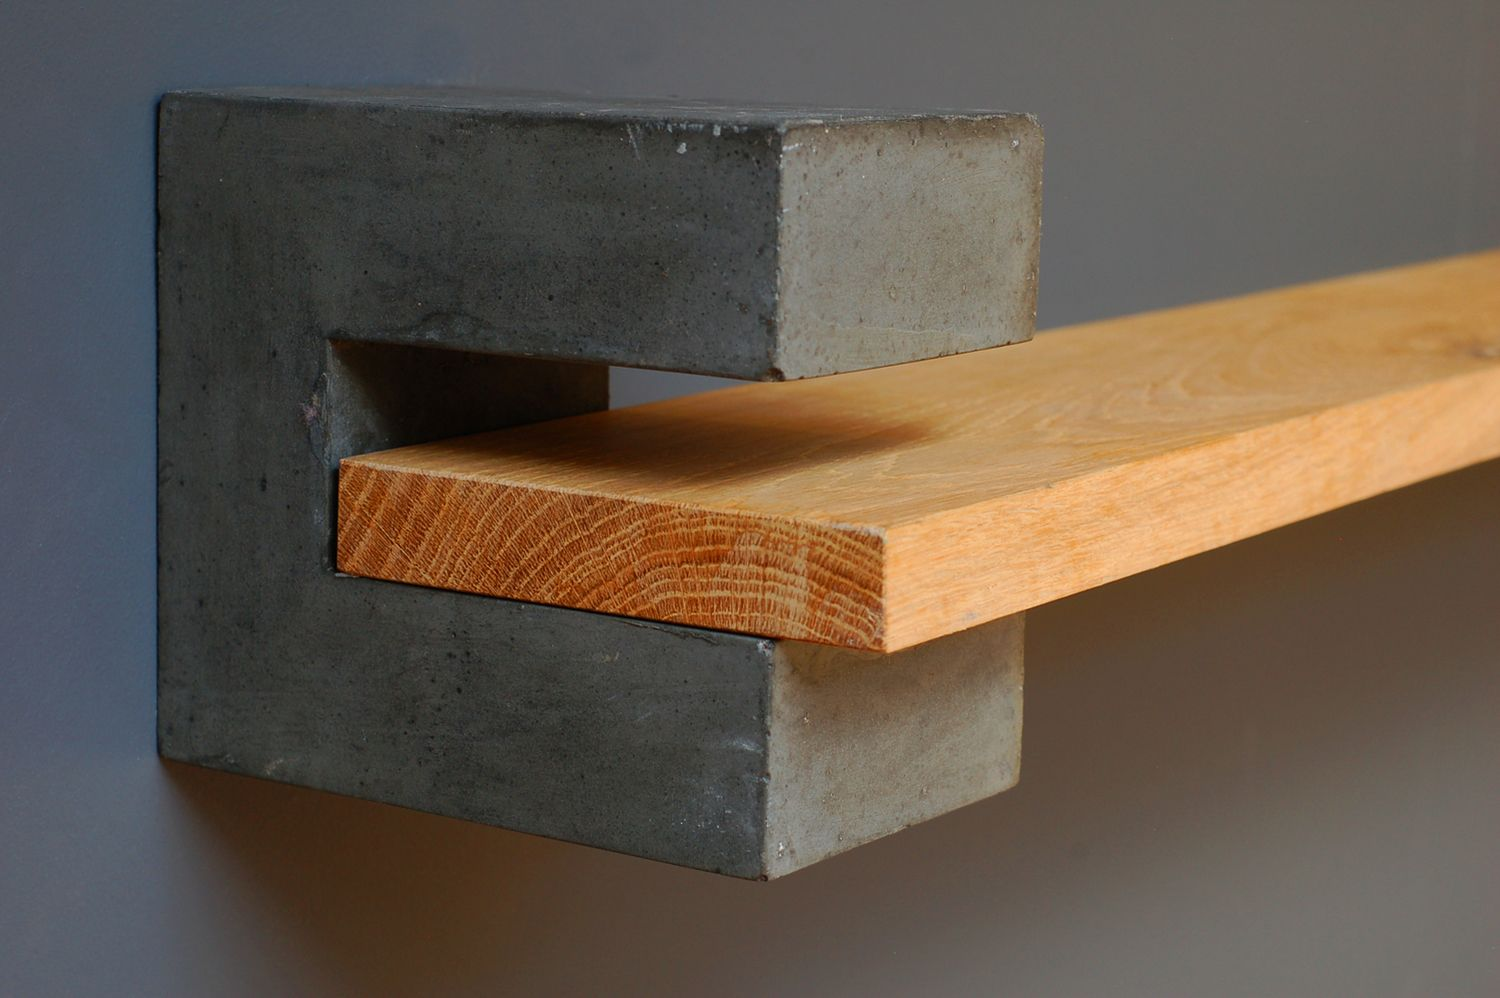 Concrete shelf brackets shelf brackets concrete and shelves